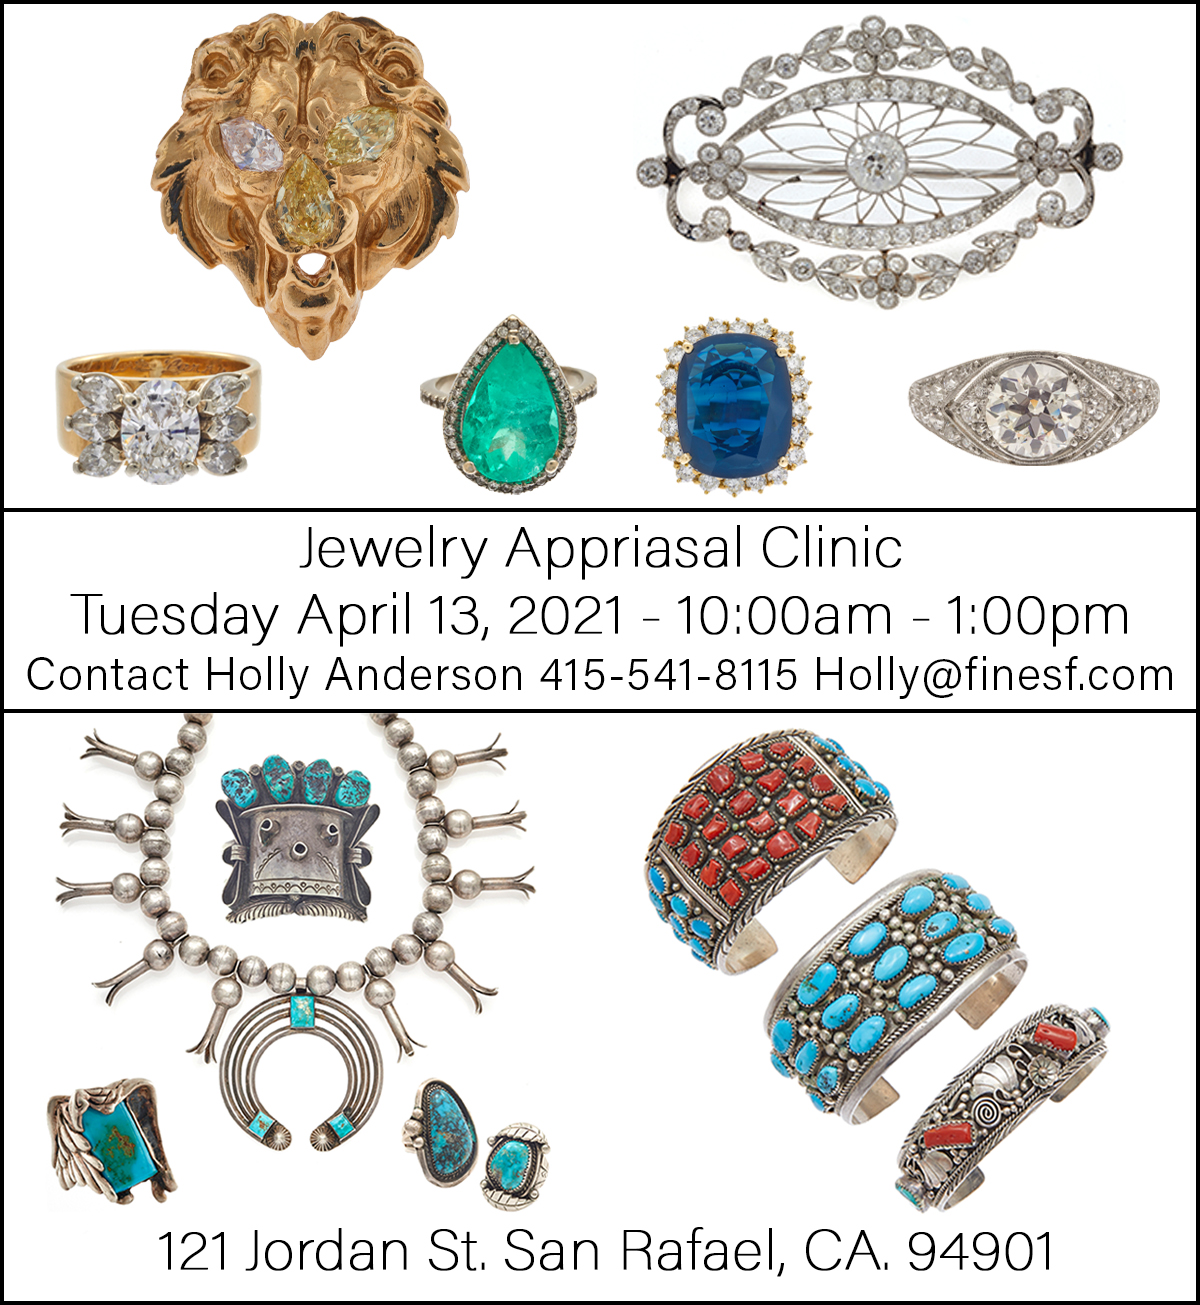 jewelry appraisal clinic april 13